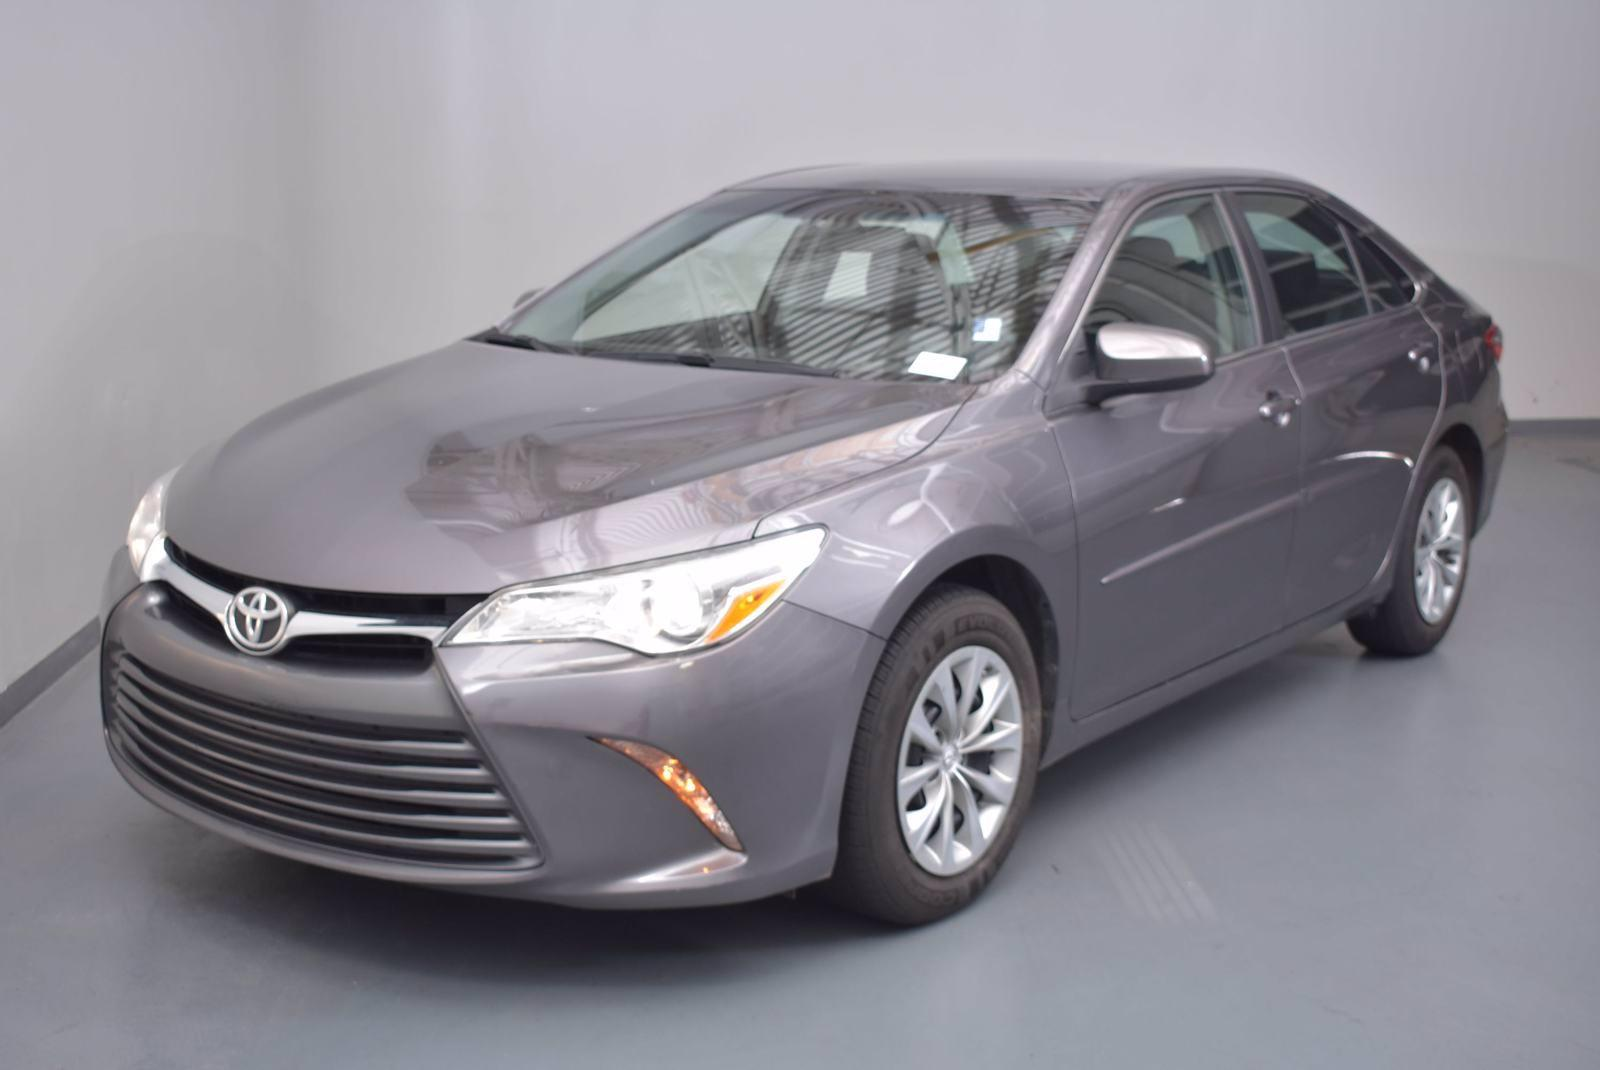 2016 Toyota Camry Vehicle Photo in Cary, NC 27511